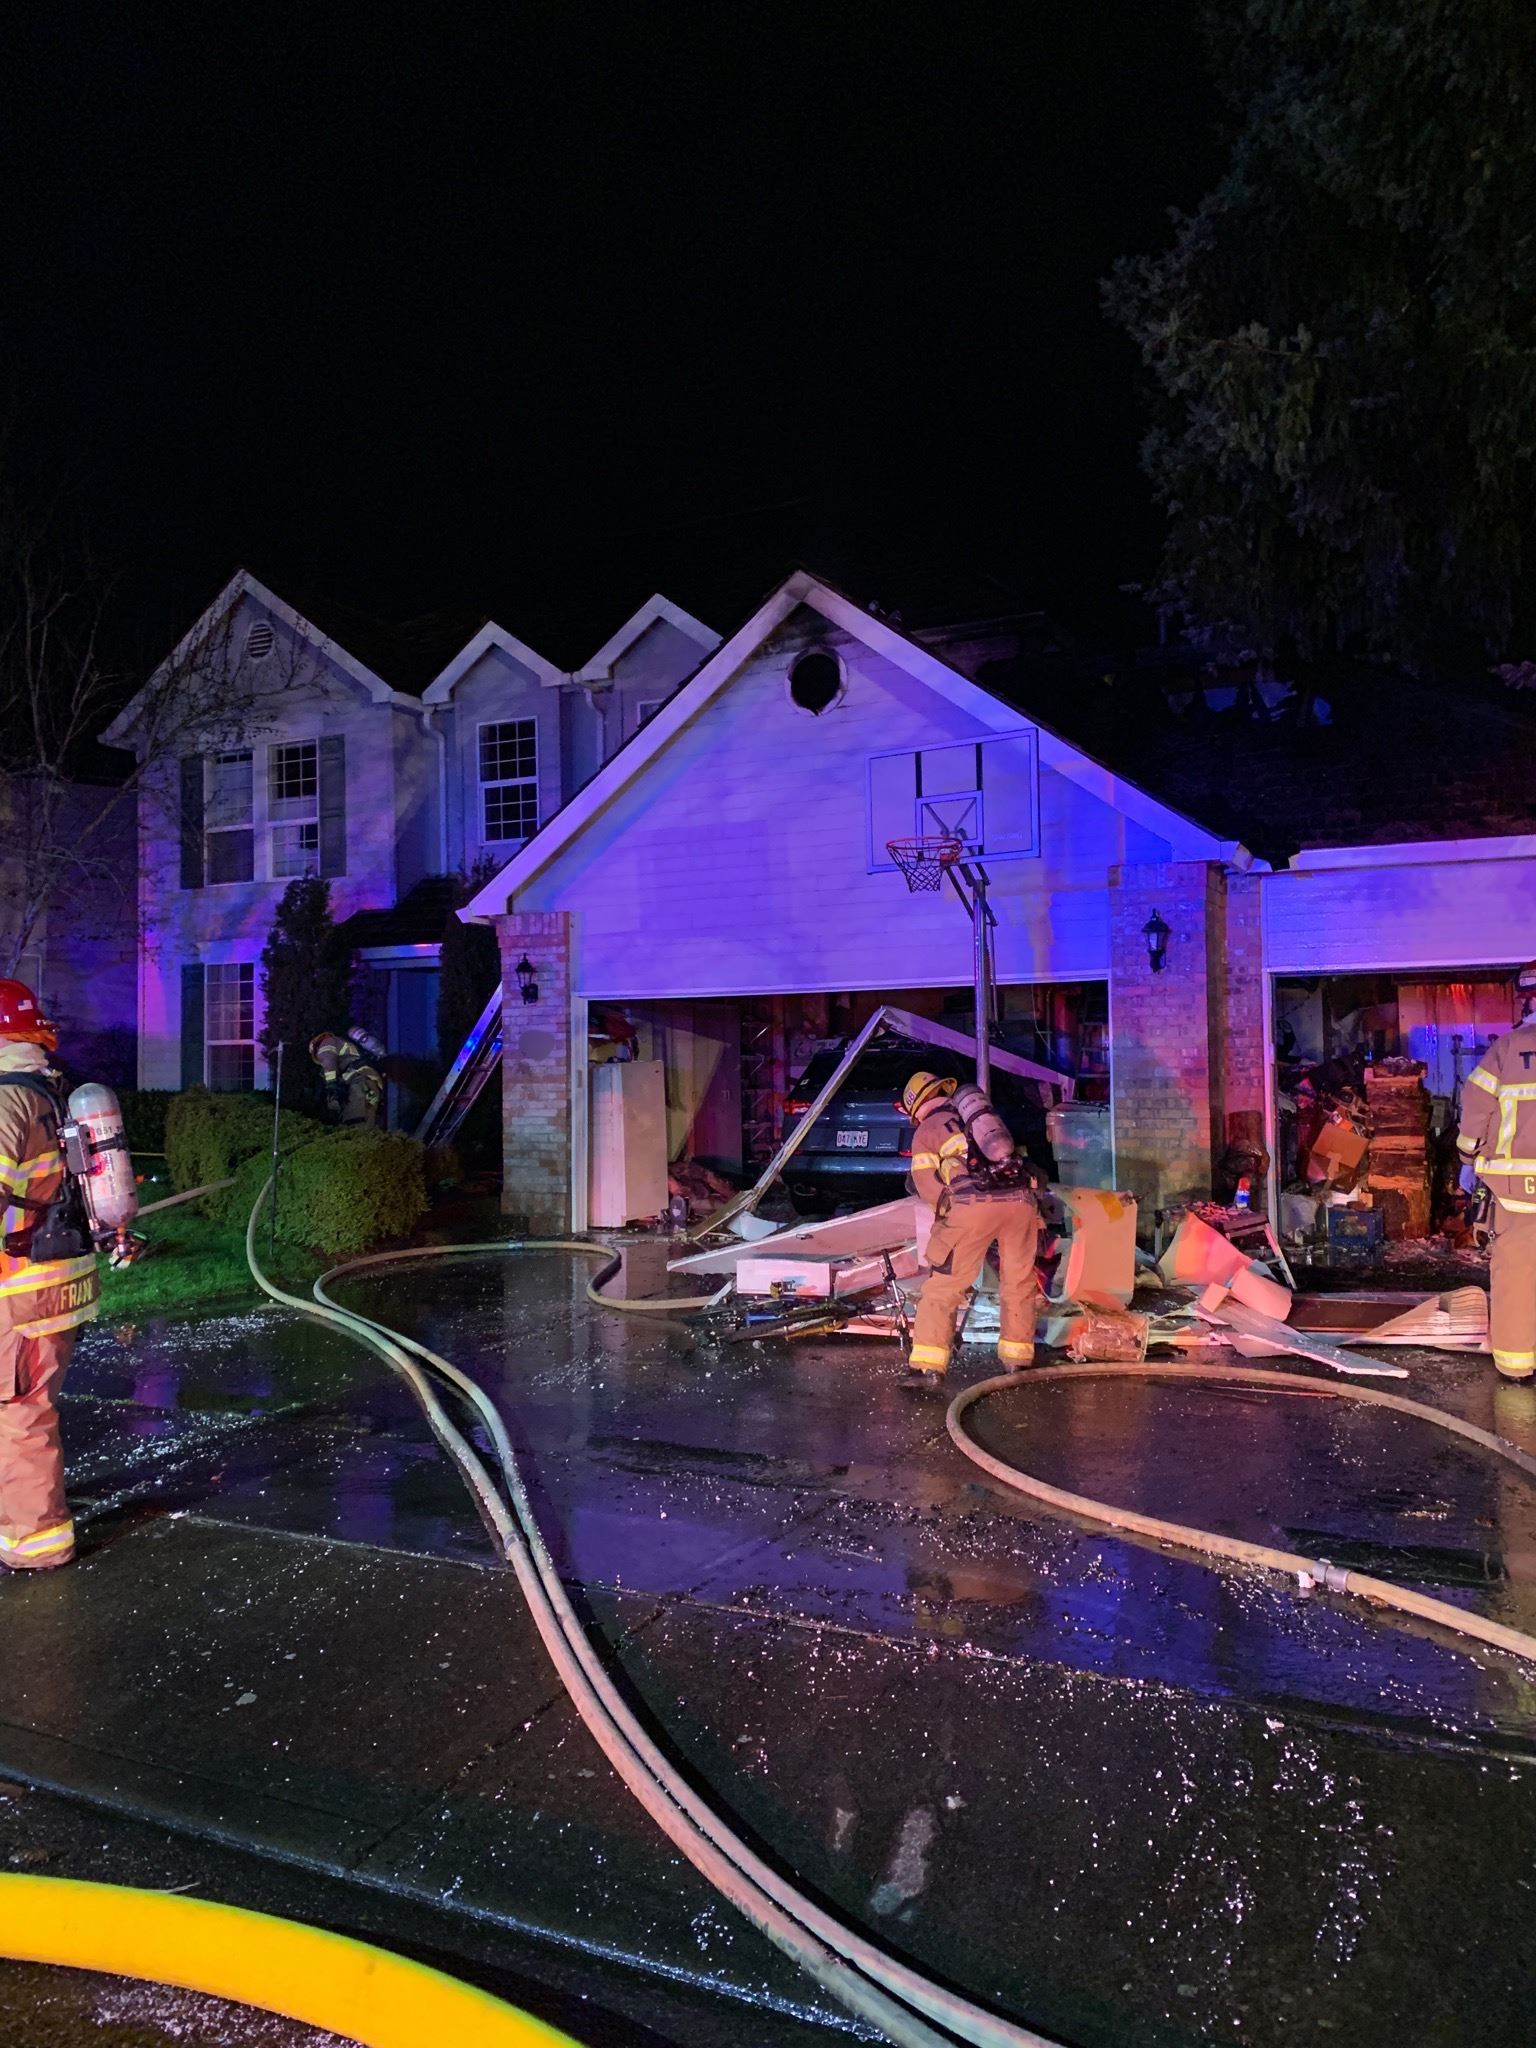 Residential Fire at 169th Place in Beaverton